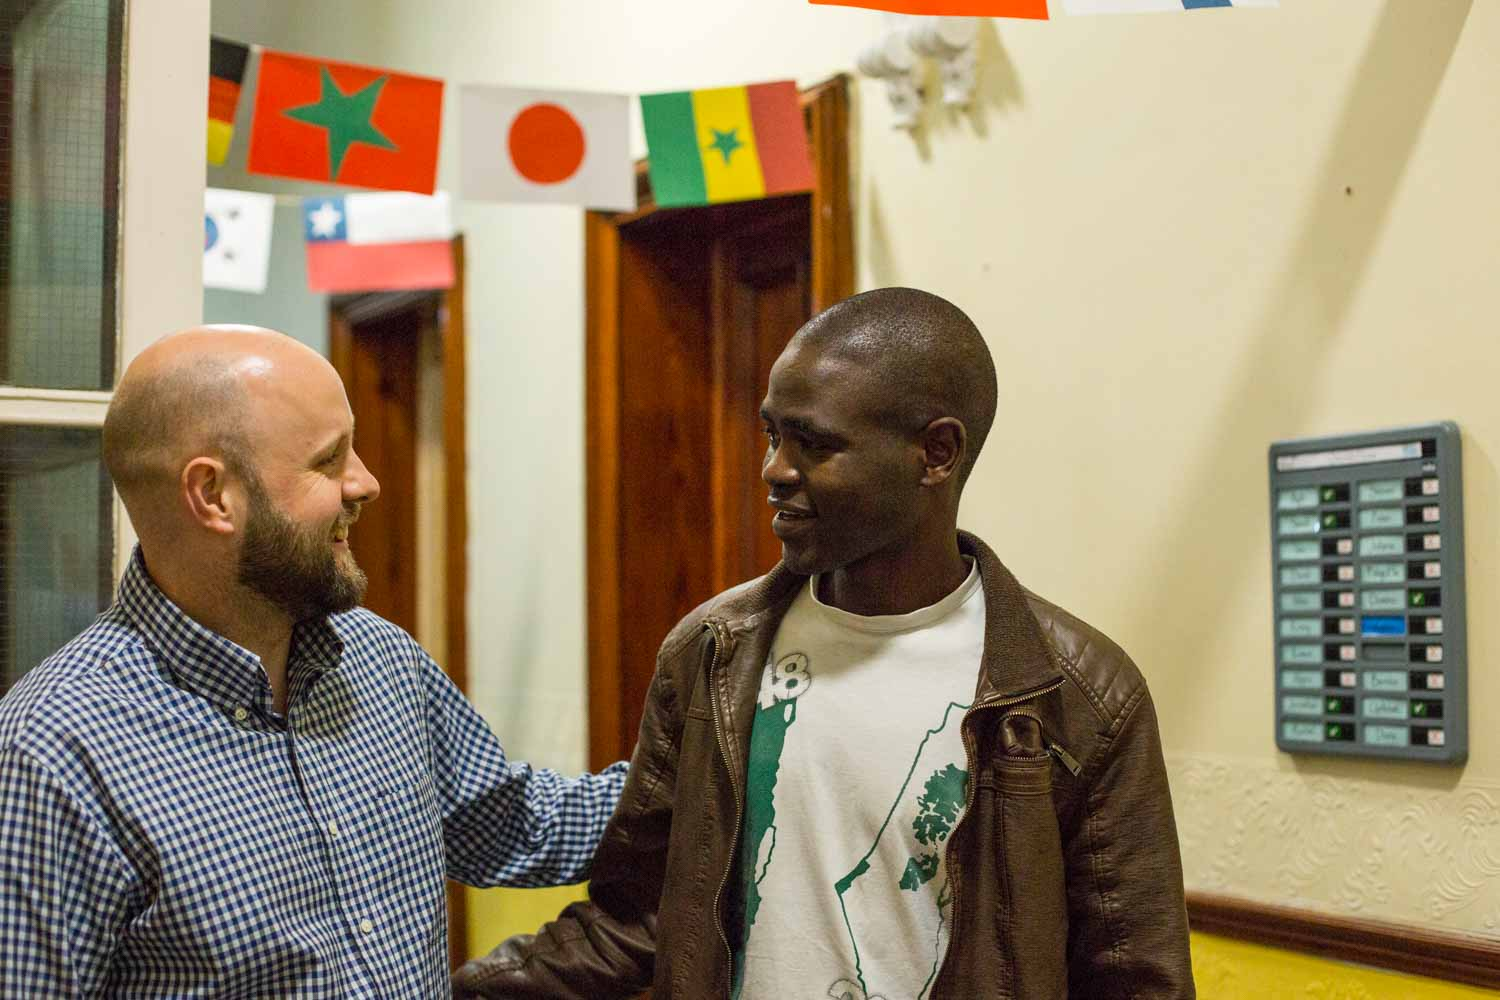 Staff member Andrew with Yakoub, one of our participants